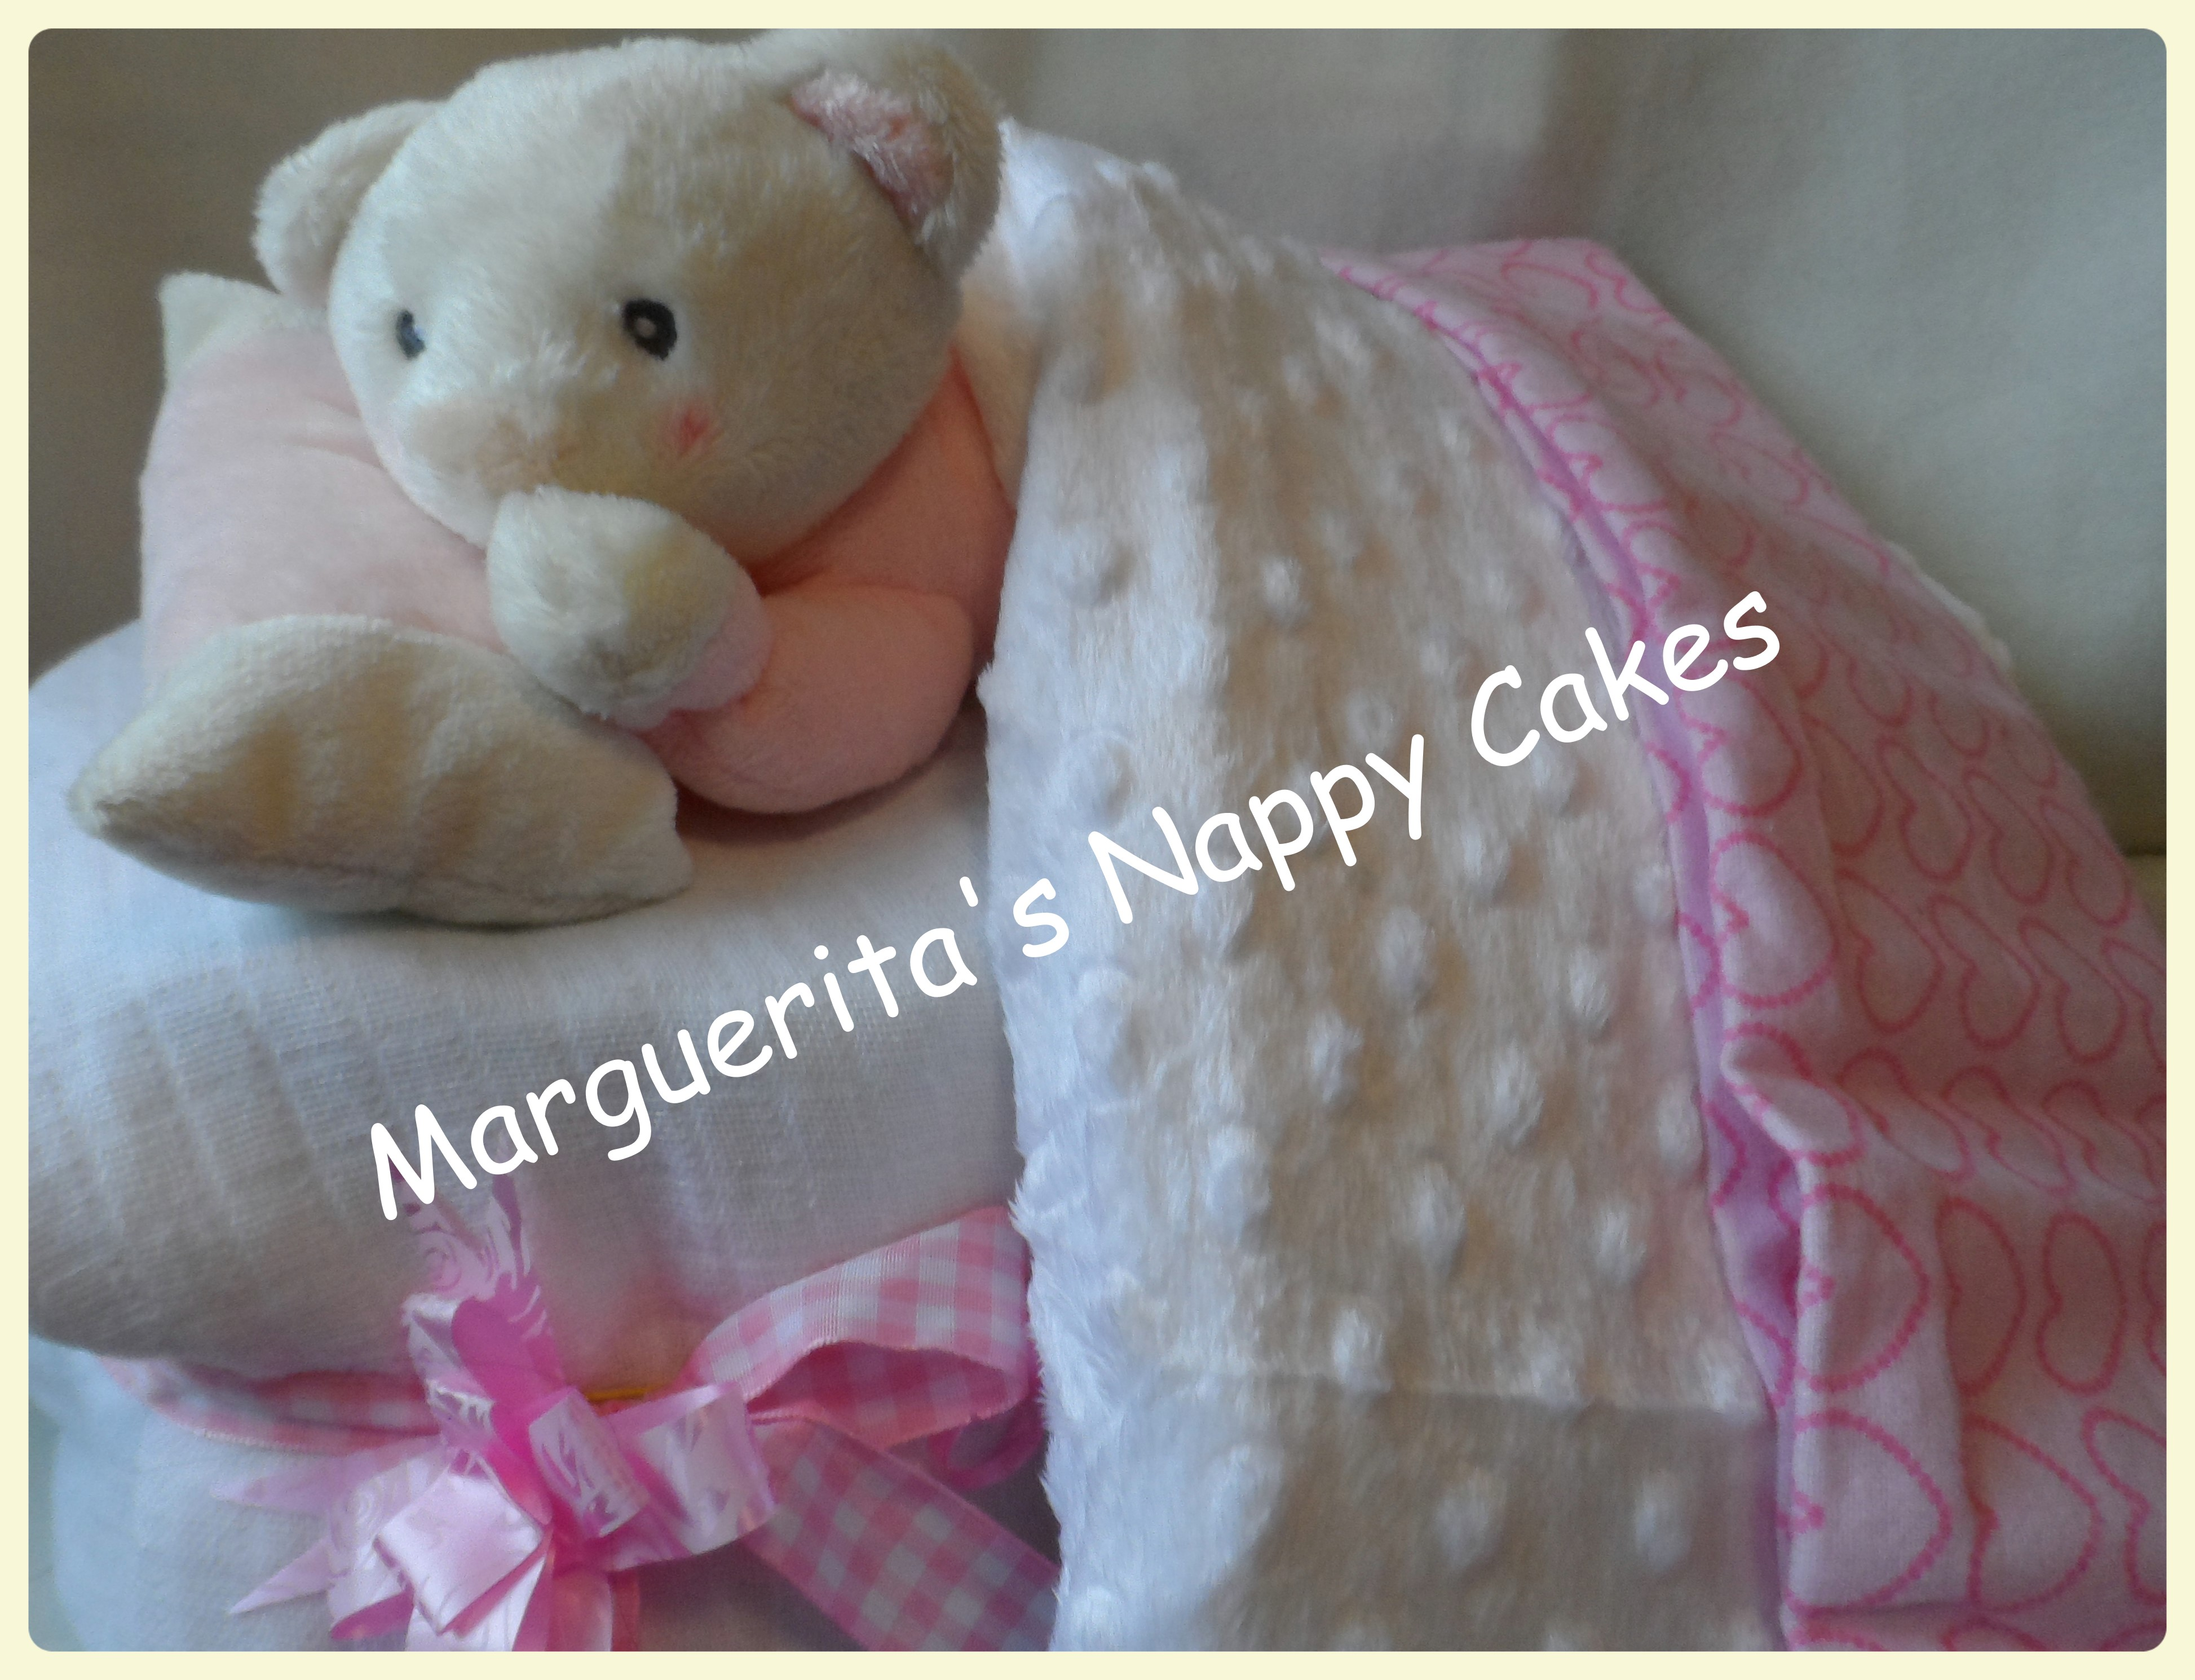 Marguerita and the Nappy Cakes